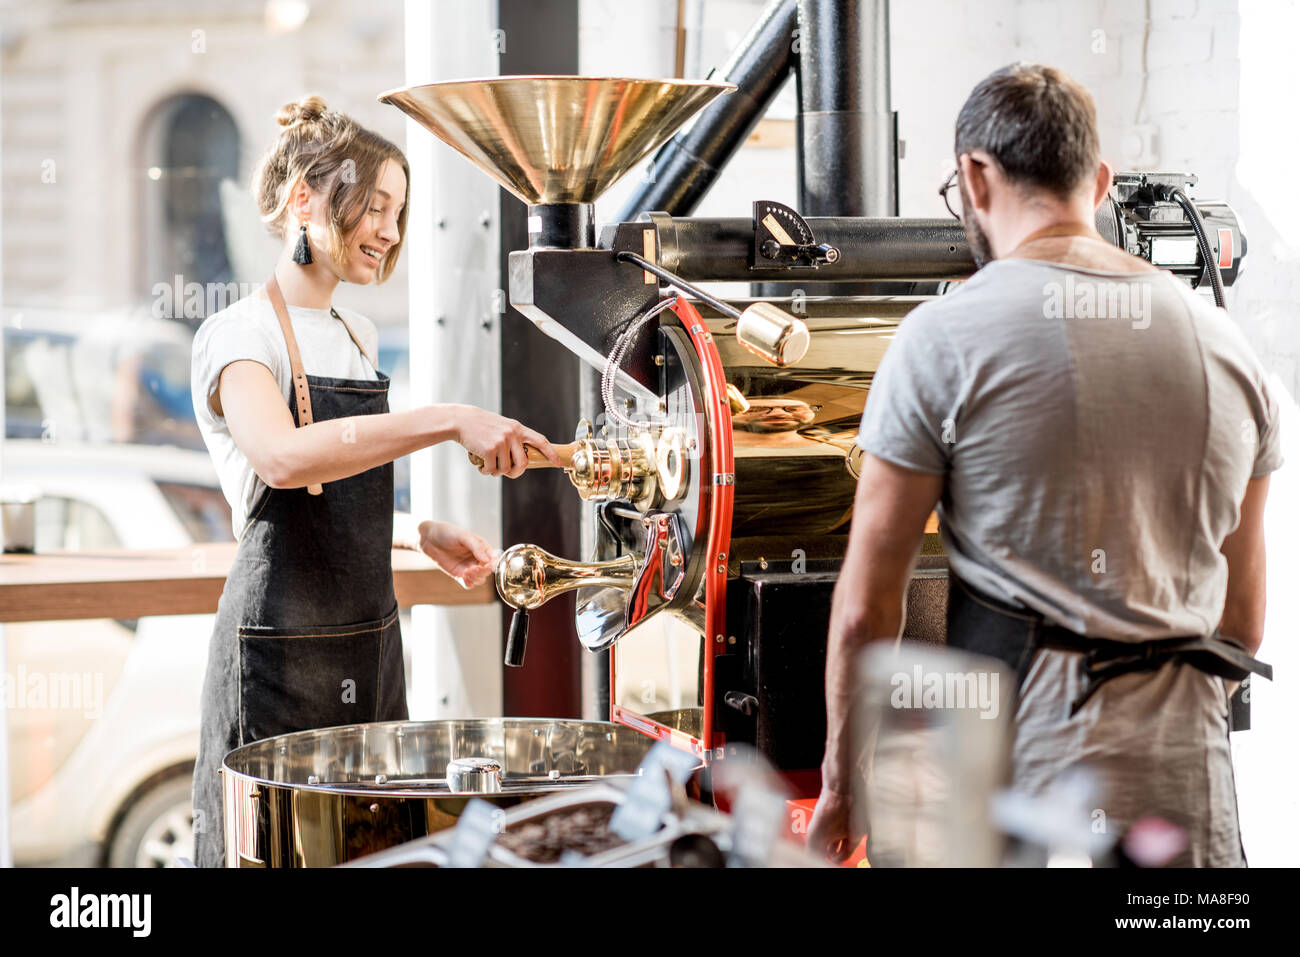 Man and woman in uniform working with roaster machine roasting coffee beans at the cafe - Stock Image